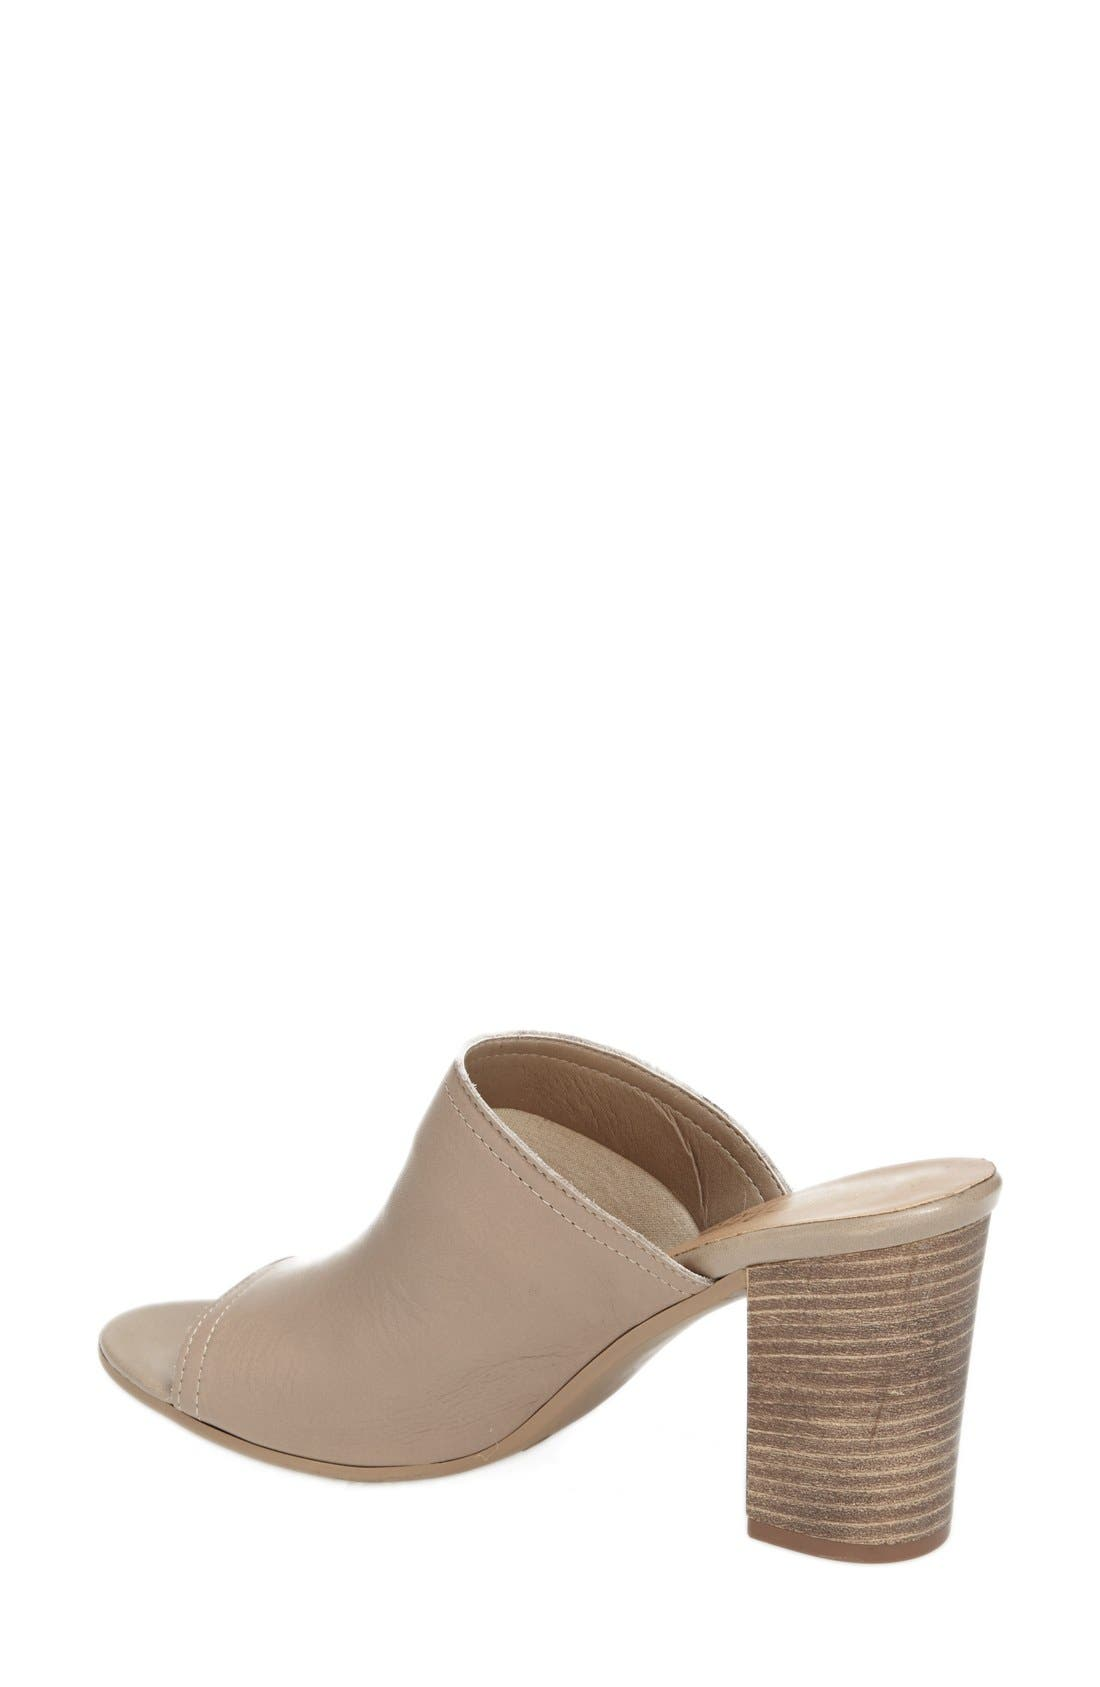 'Arno' Leather Mule,                             Alternate thumbnail 18, color,